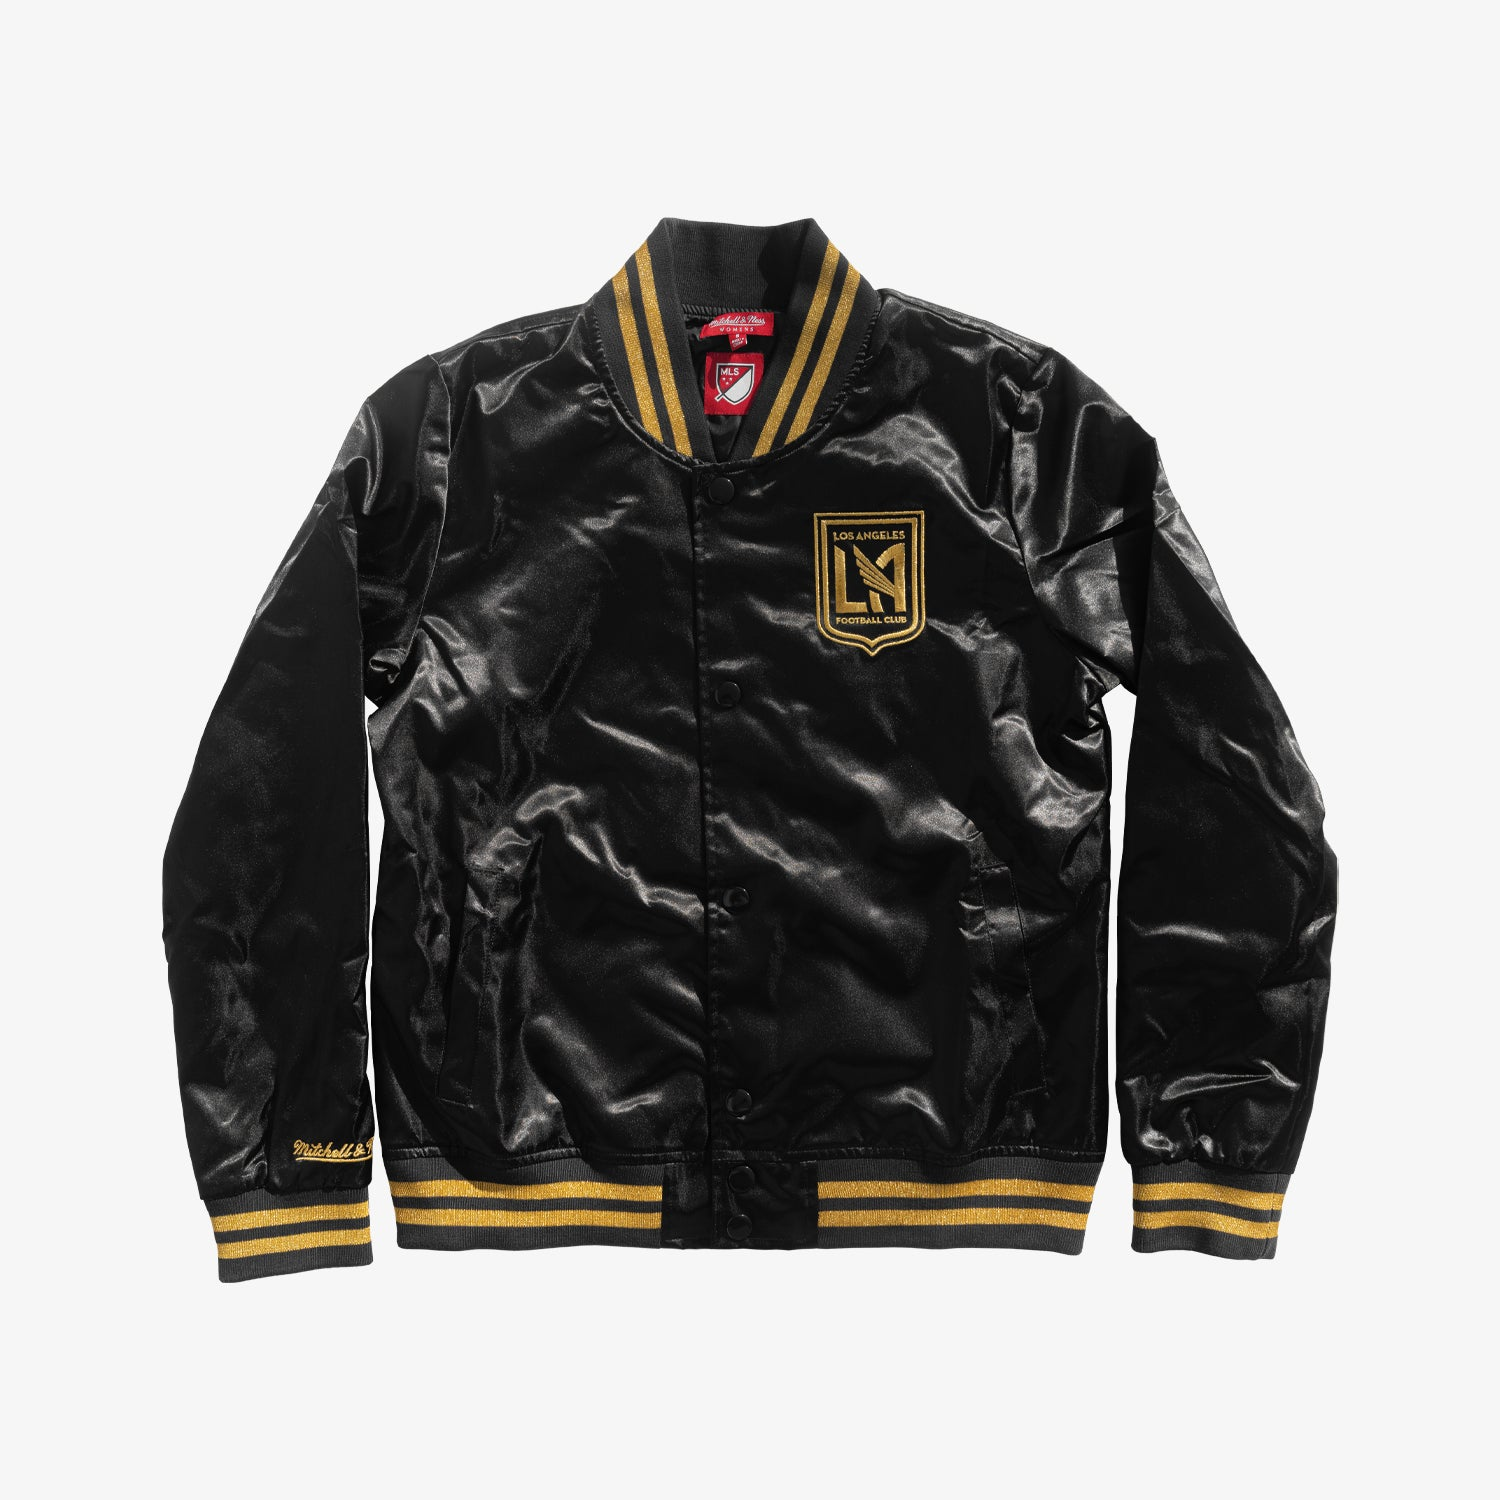 LAFC Lightweight Satin Jacket - Women's